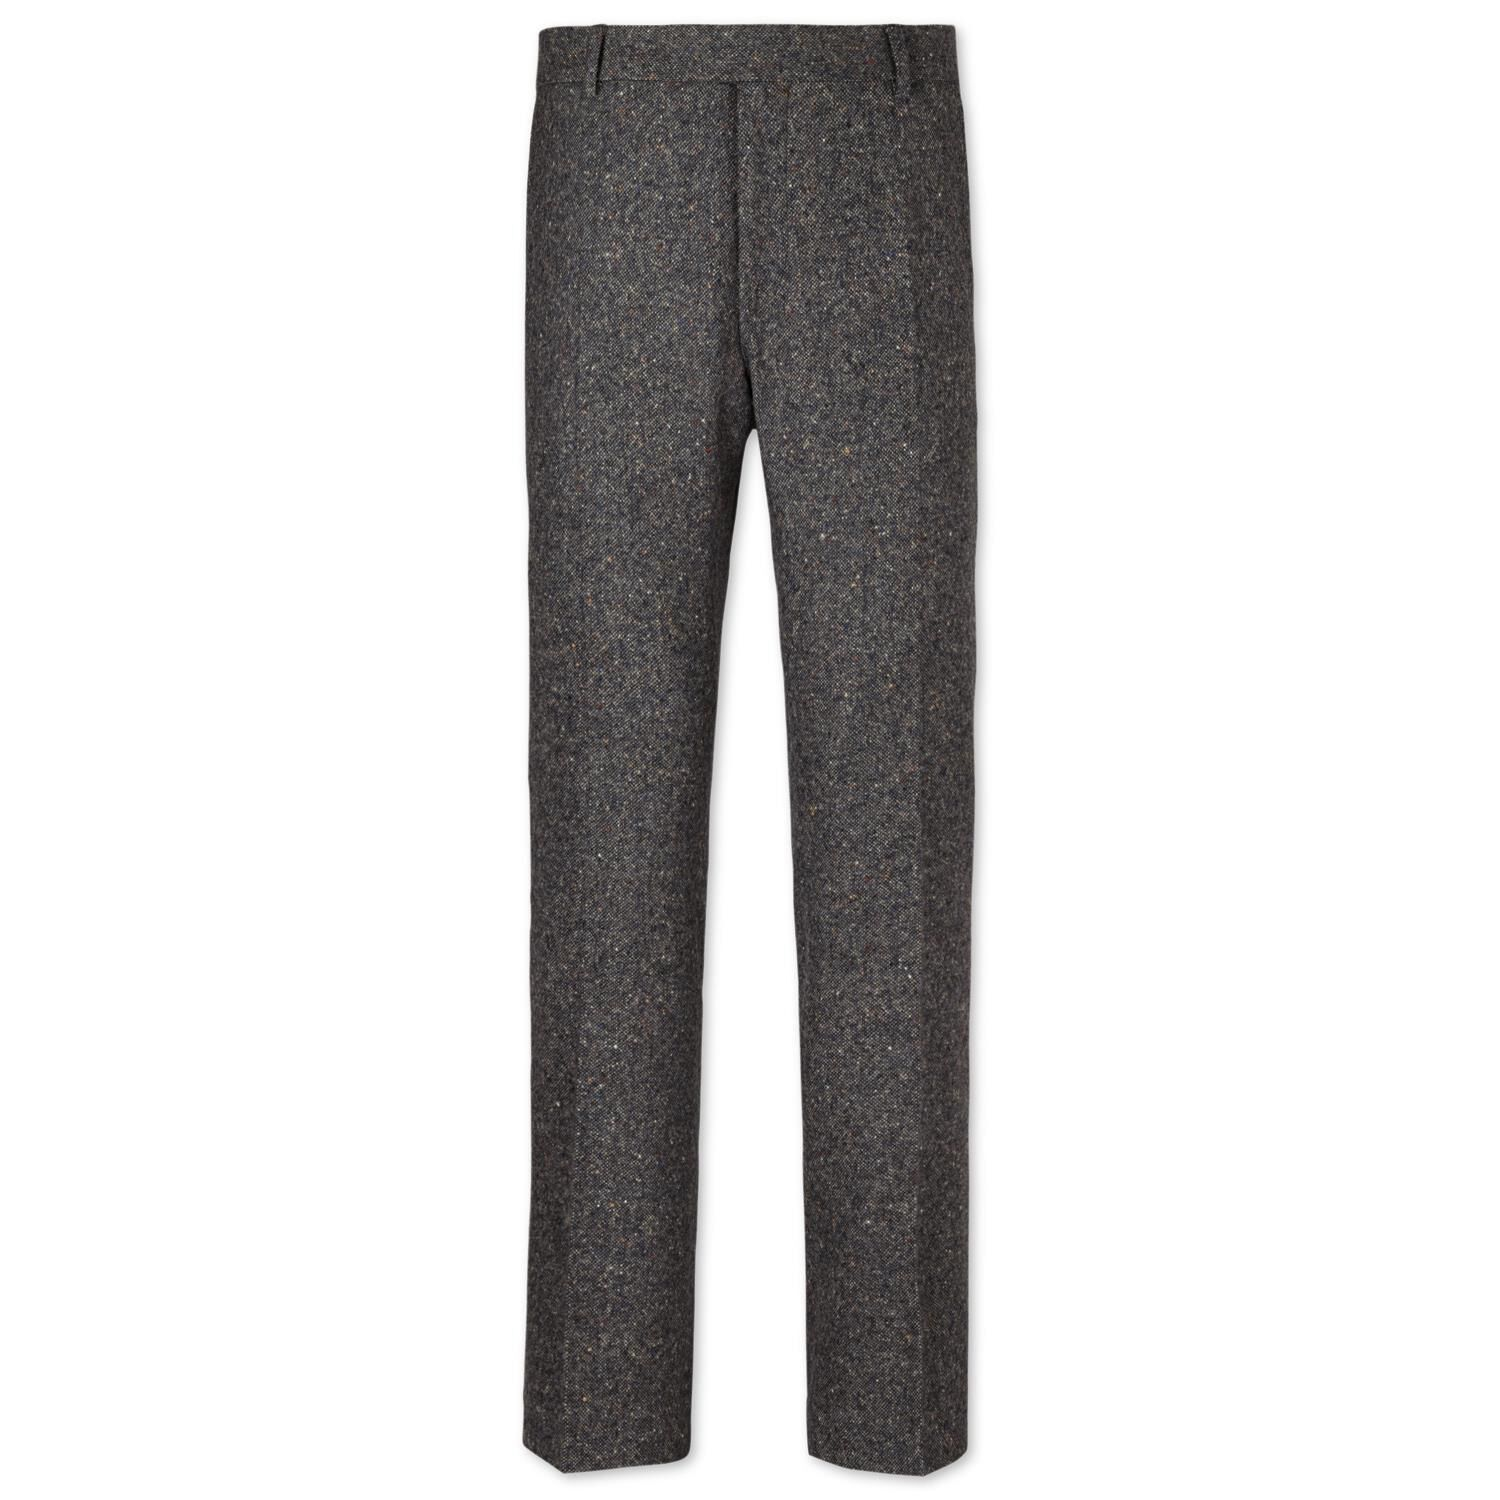 Grey Slim Fit Donegal Tweed Trousers Size W34 L38 by Charles Tyrwhitt